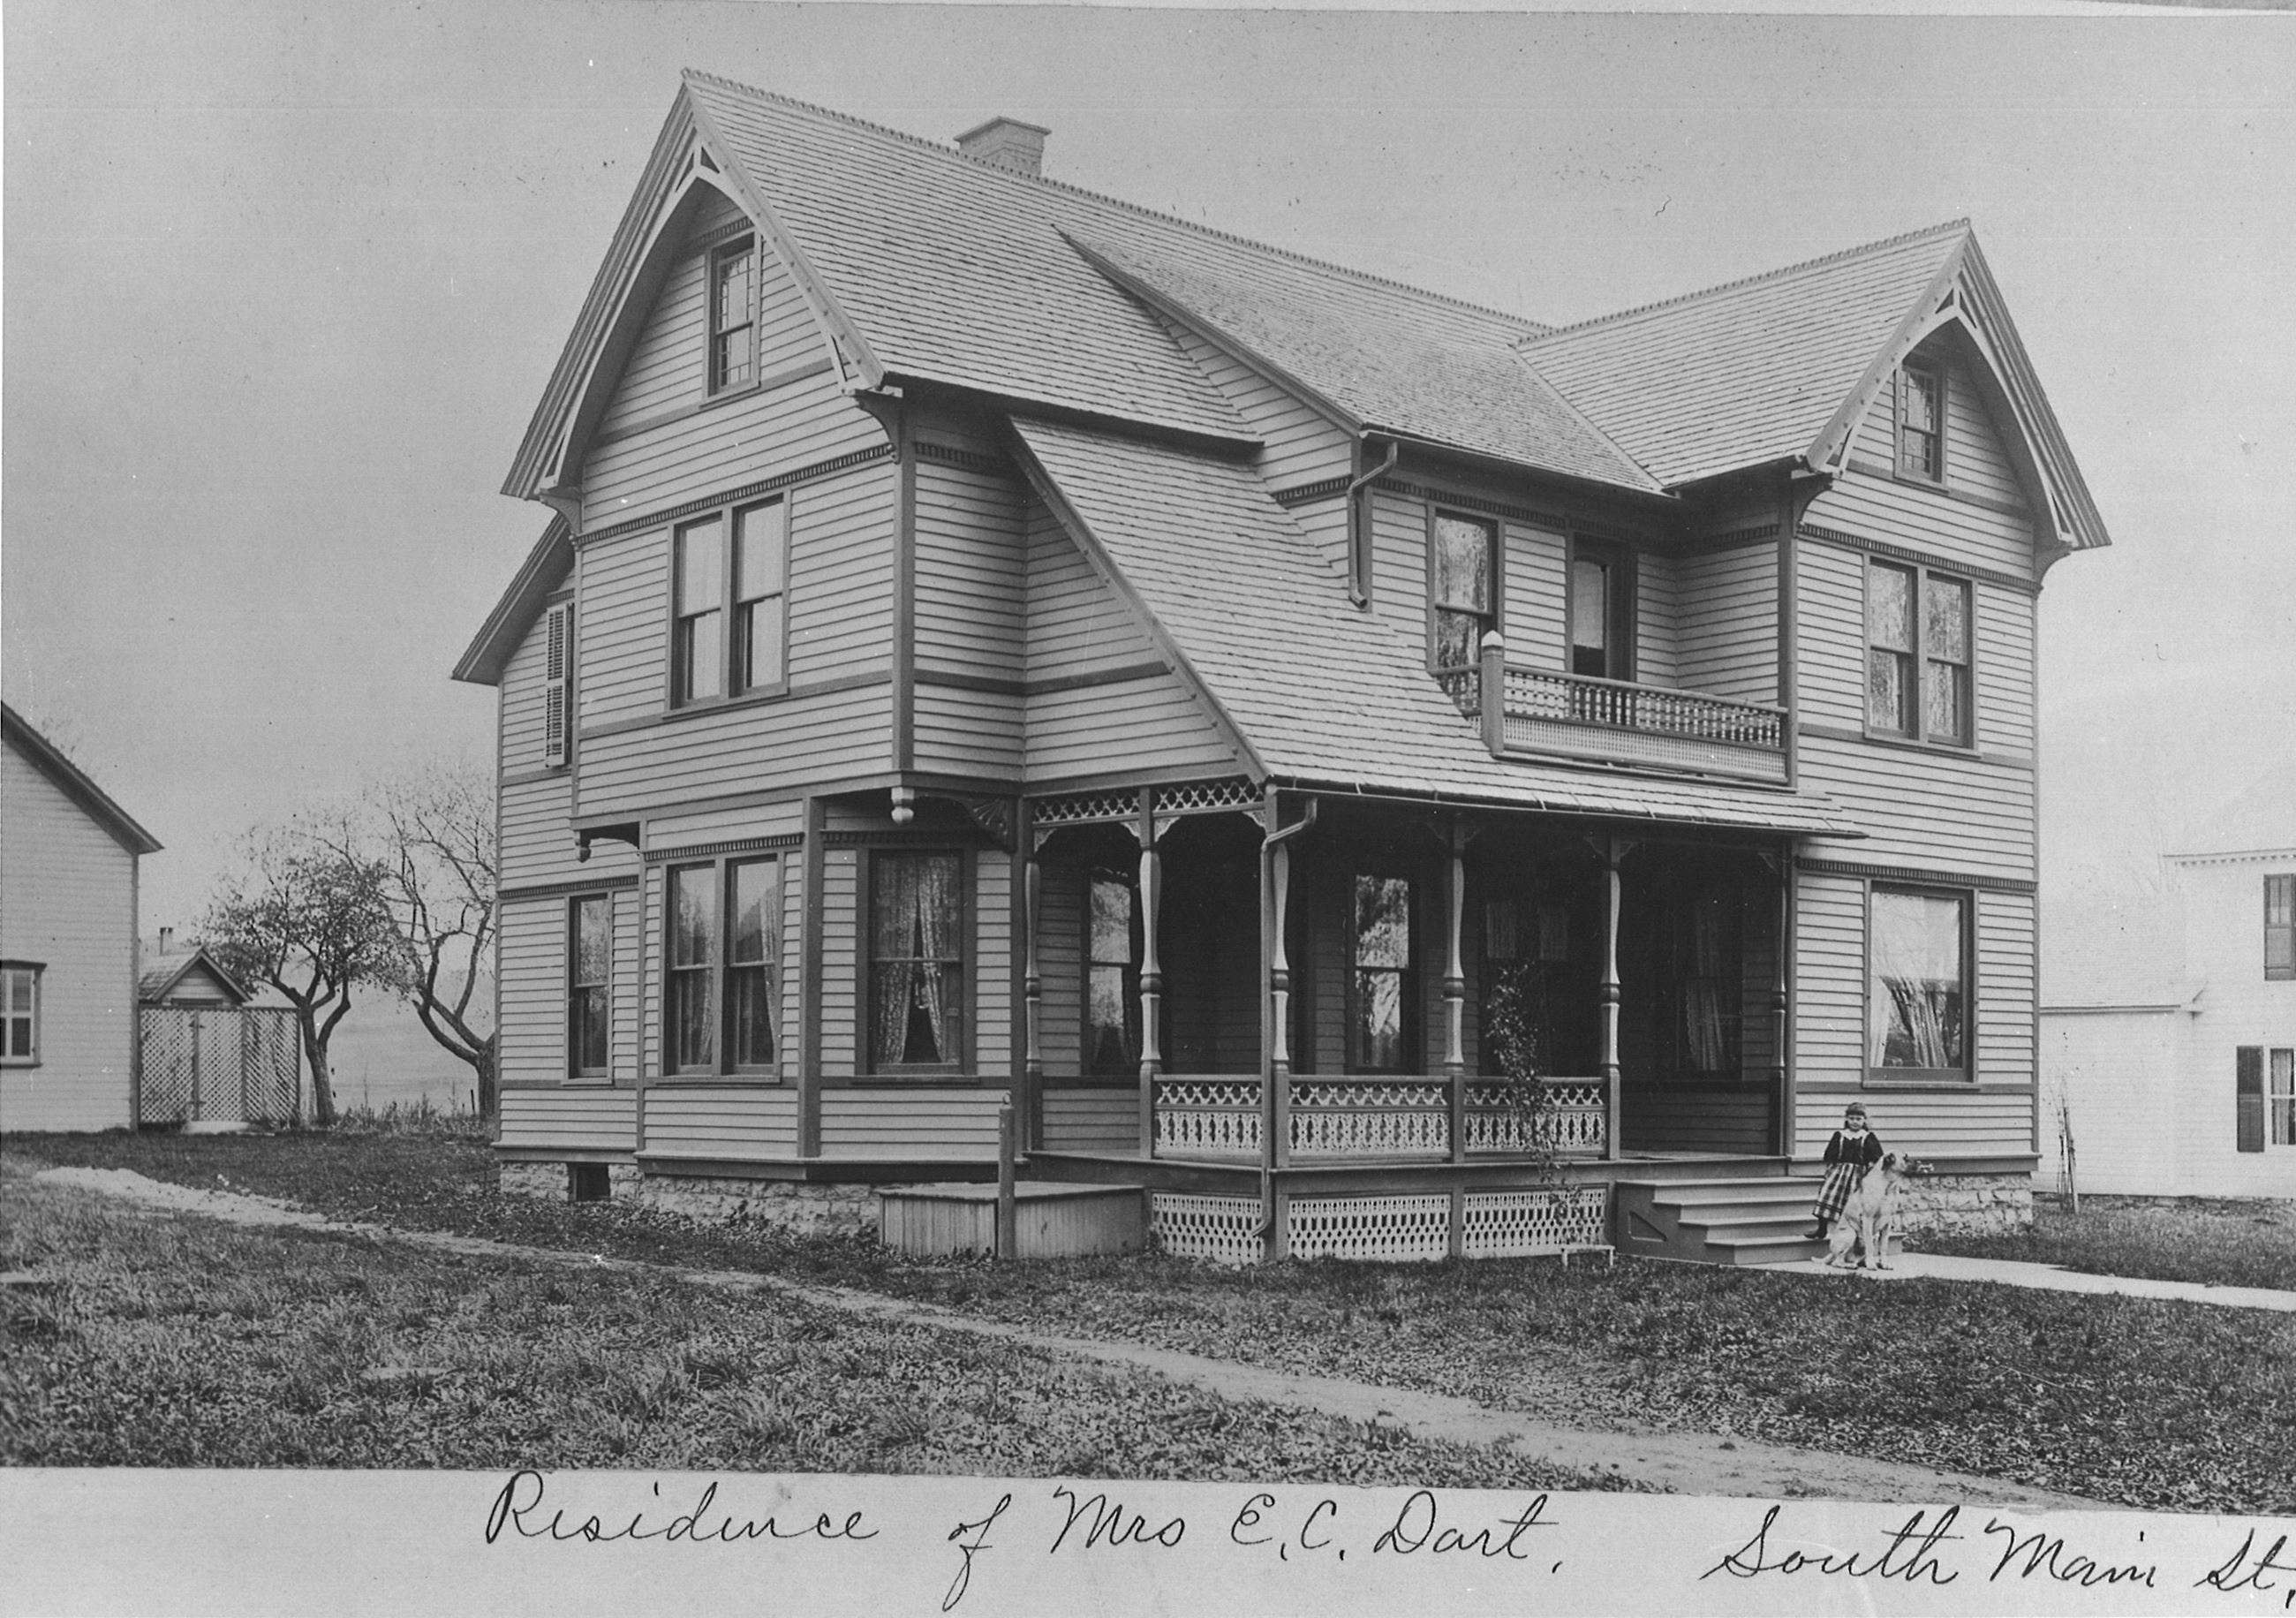 Dart Residence, South Main St., Earlville